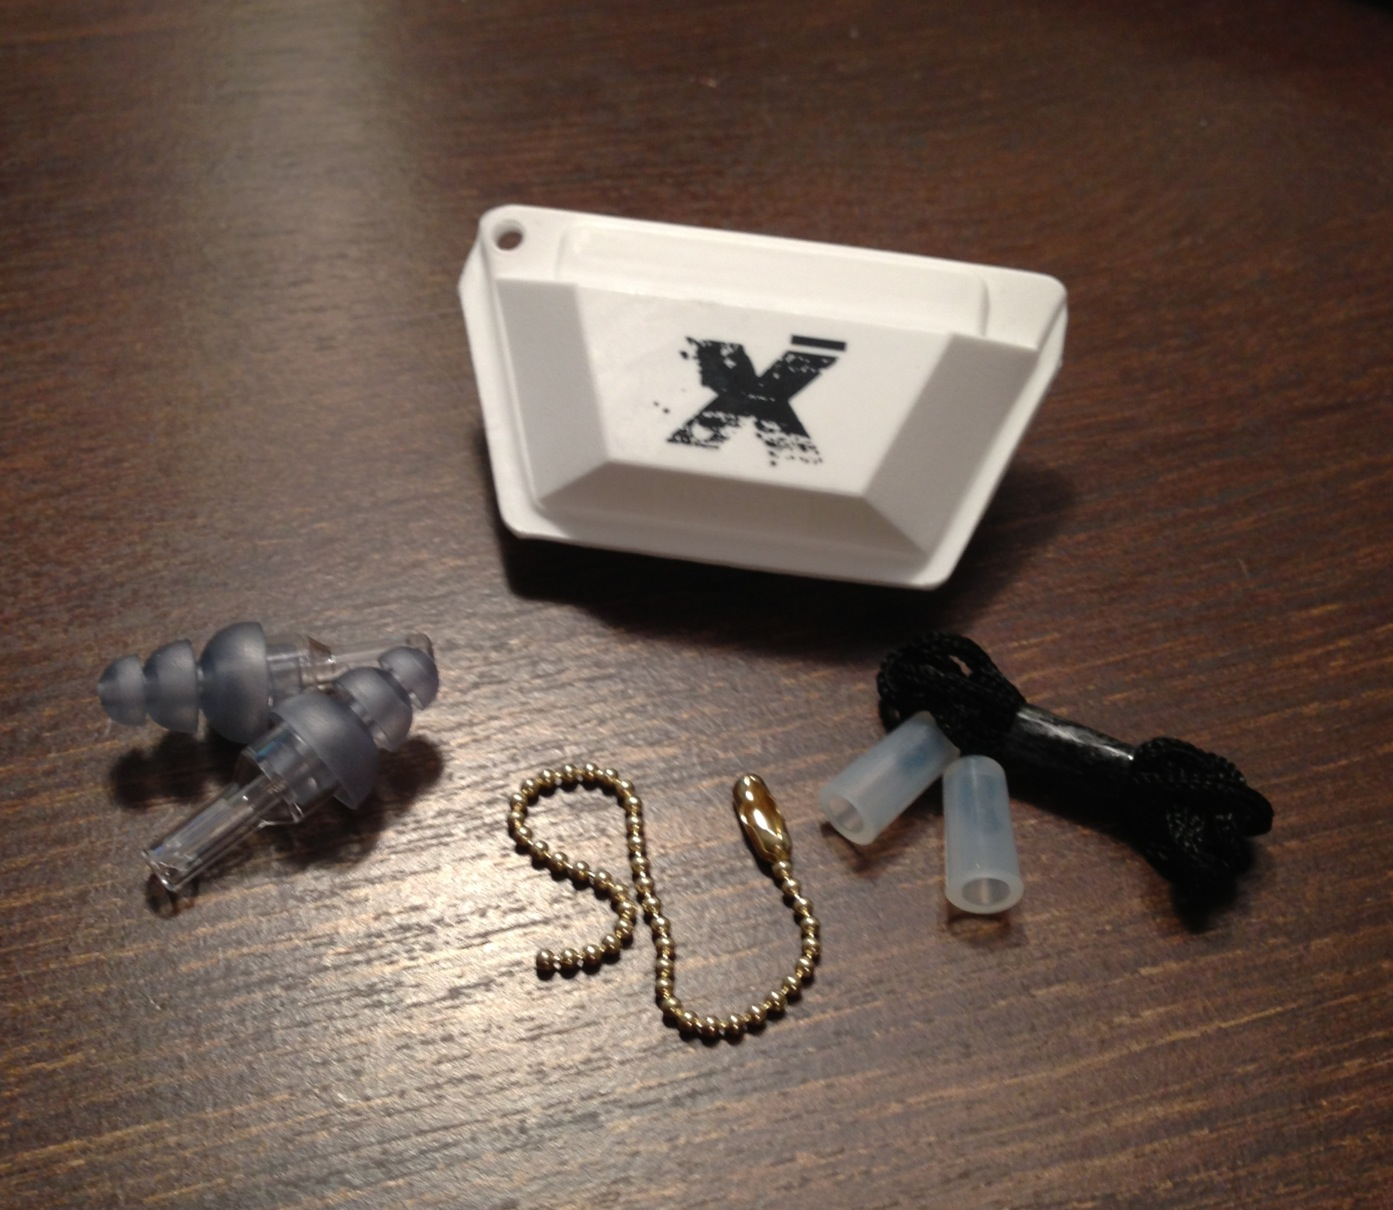 ETY•Plugs®come with a Rhythm X case, a key chain, a neck cord and two high-fidelity earplugs.